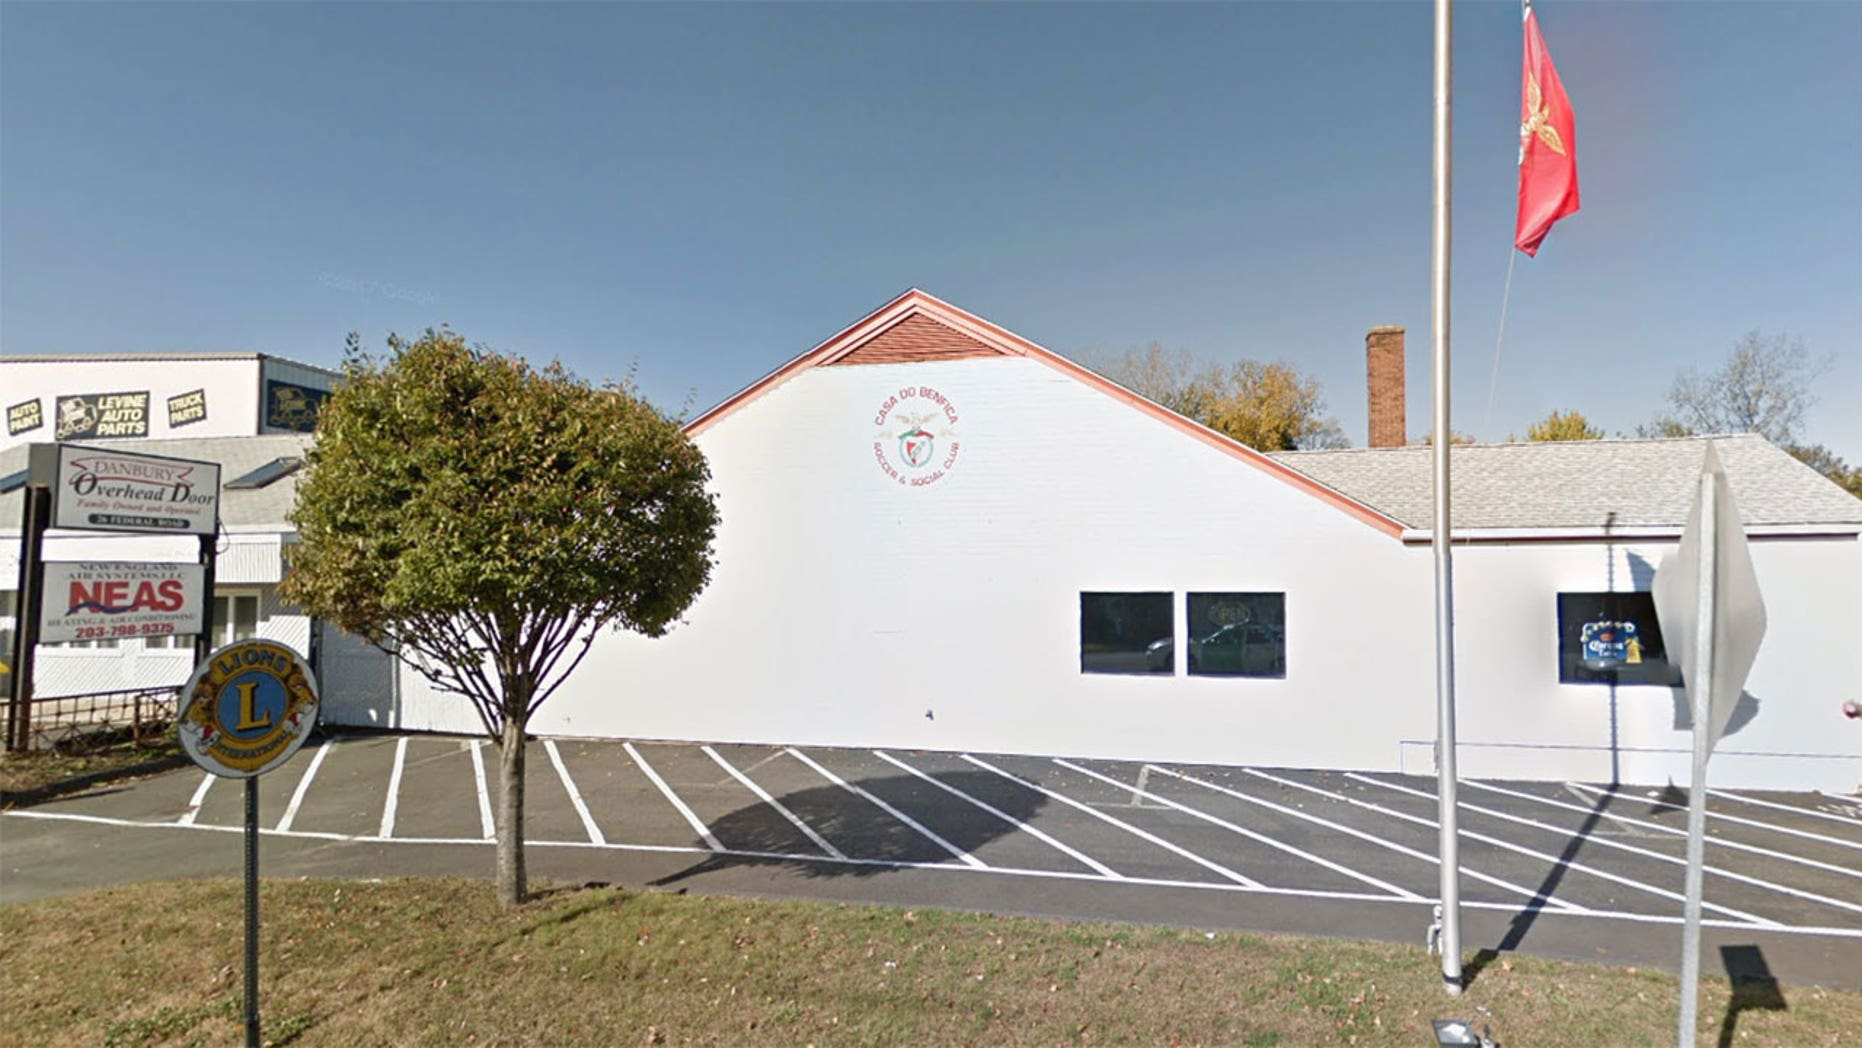 The man reportedly fell from the roof of the Danbury social club and onto a rotisserie stand.